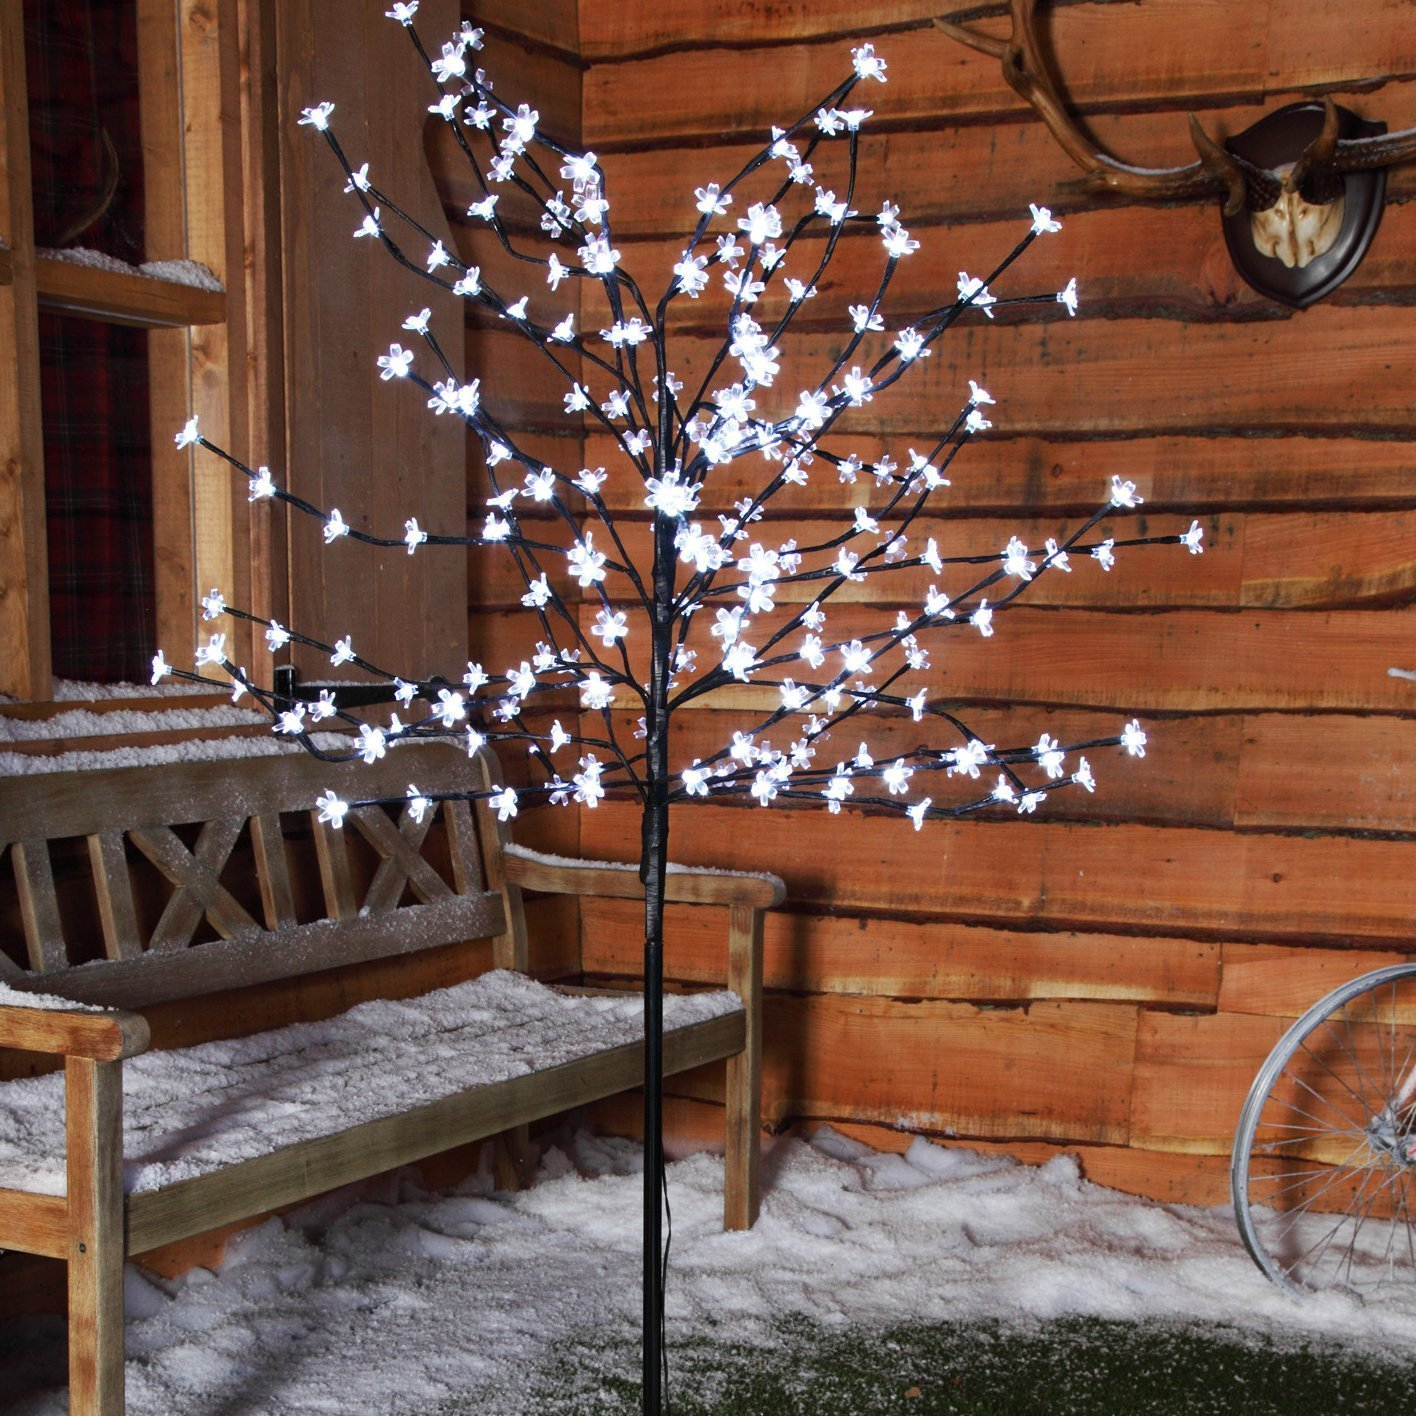 1.8m (6ft) 200 LED Cherry Blossom Tree by Noma - Bright White